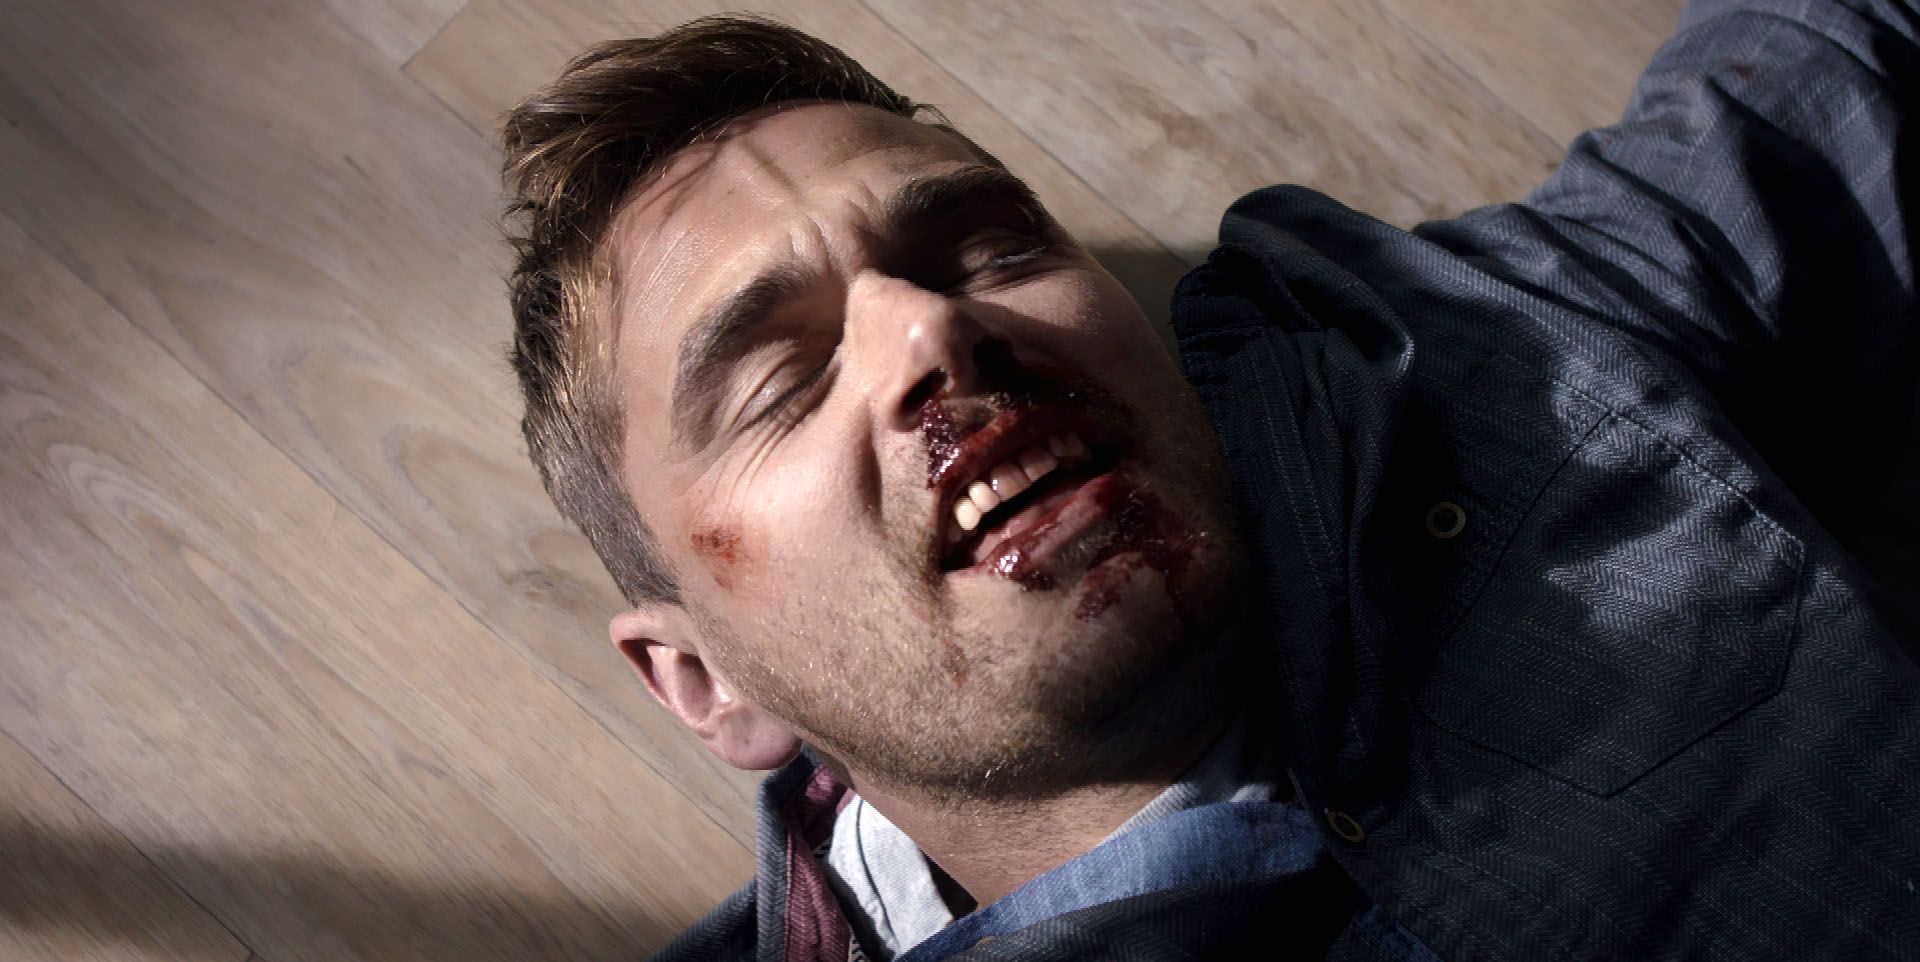 Iain Dean gets beaten up in Casualty